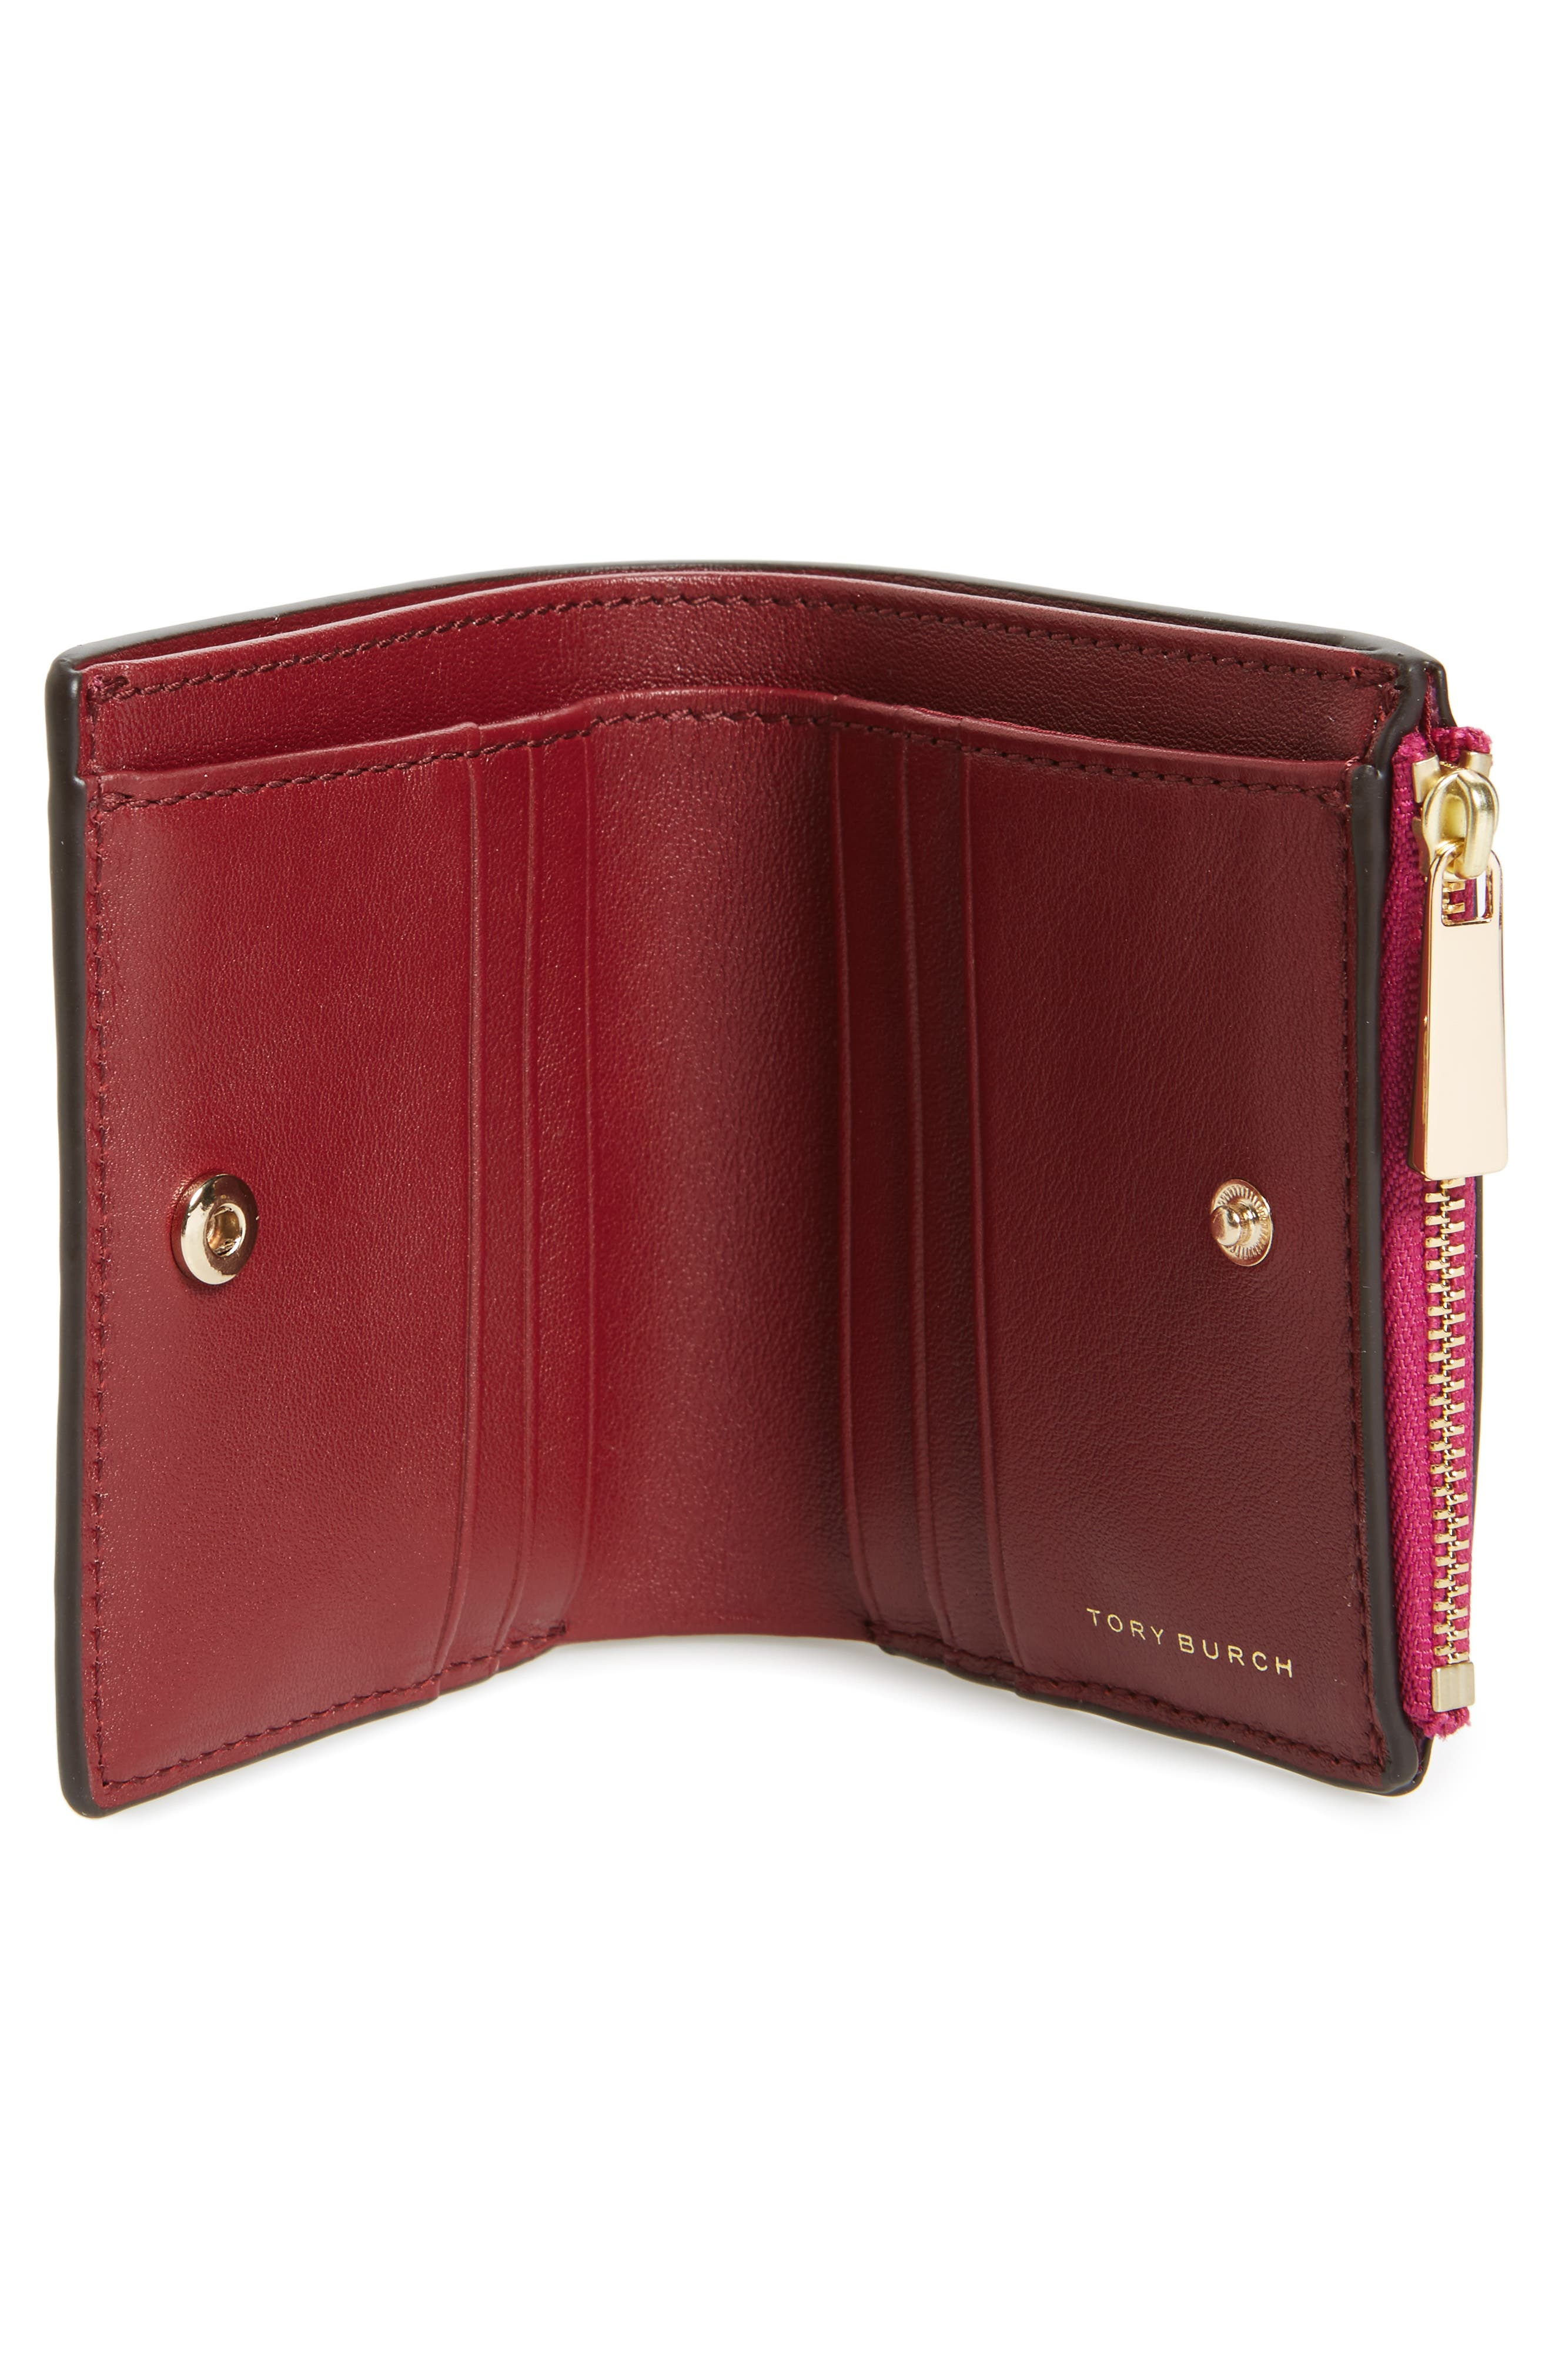 Mini Robinson Wallet Patent Leather Bifold Wallet,                             Alternate thumbnail 3, color,                             Party Fuchsia